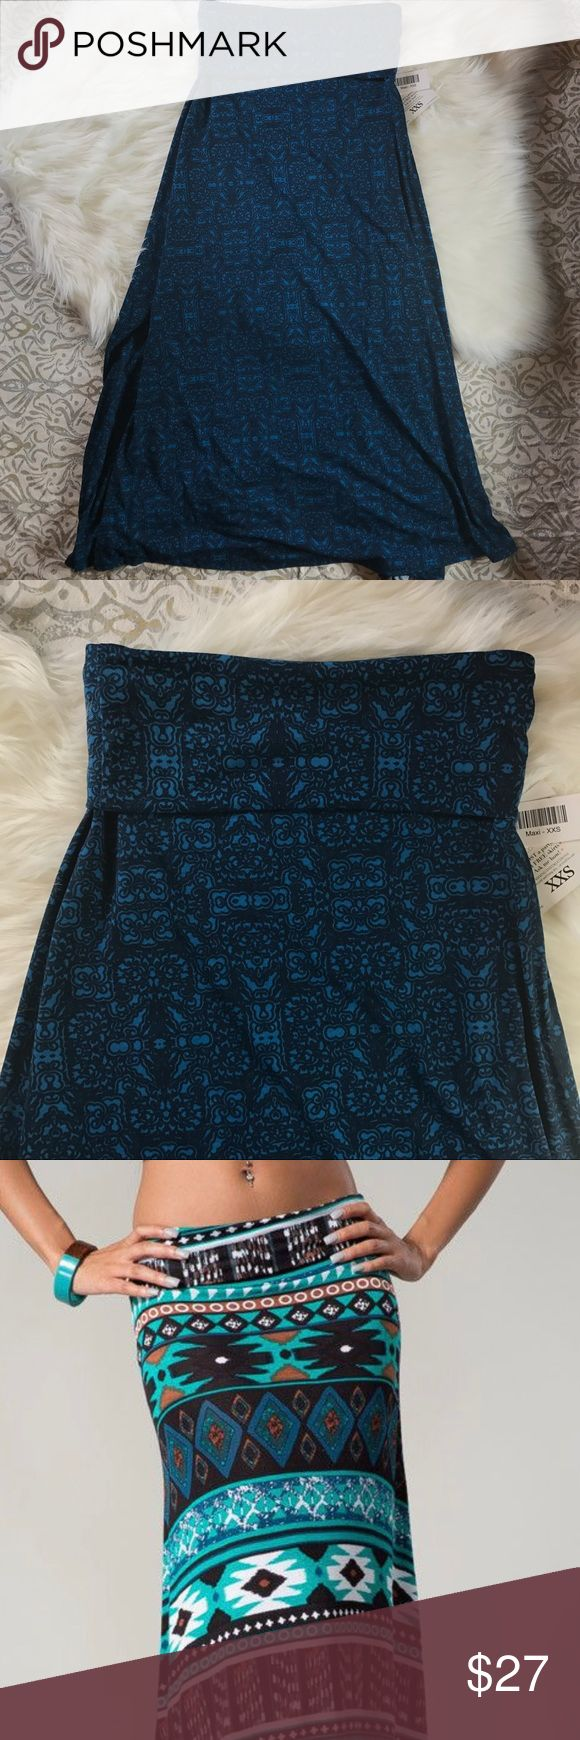 LulaRoe Navy Blue & Teal Moroccan Maxi Skirt NEW ✨New With Tags Navy & Teal Maxi                        ✨Size XXS. THIS SKIRT RUNS LARGE, IT IS RECOMMEND YOU SIZE DOWN 1-2 SIZES✨.       ✨Our Maxi skirt is a go-to piece for the woman who wants to be comfortable throughout the day but still likes to look her best. It's perfect for the woman whose demanding day requires function and style from her wardrobe. The LuLaRoe Maxi Skirt can easily be worn while playing on the ground with kids and…